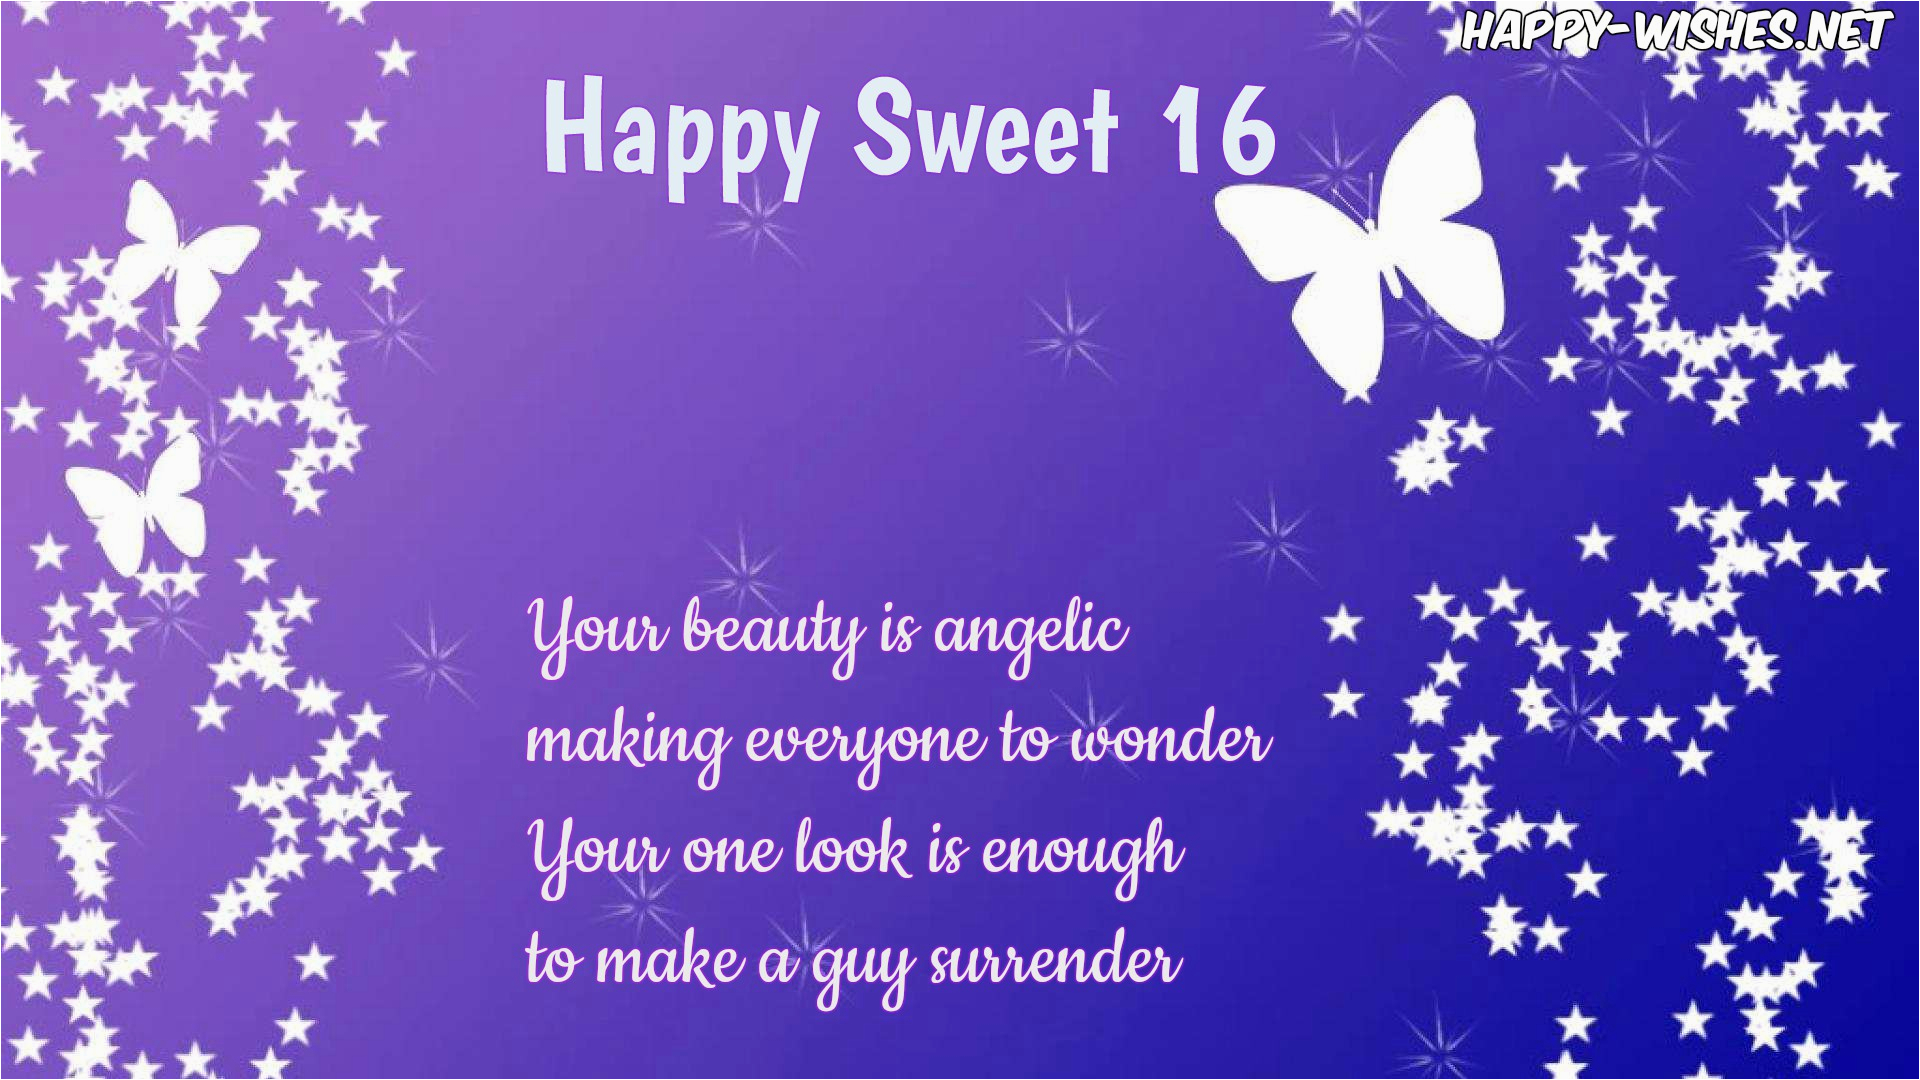 happy sweet 16 quotes images